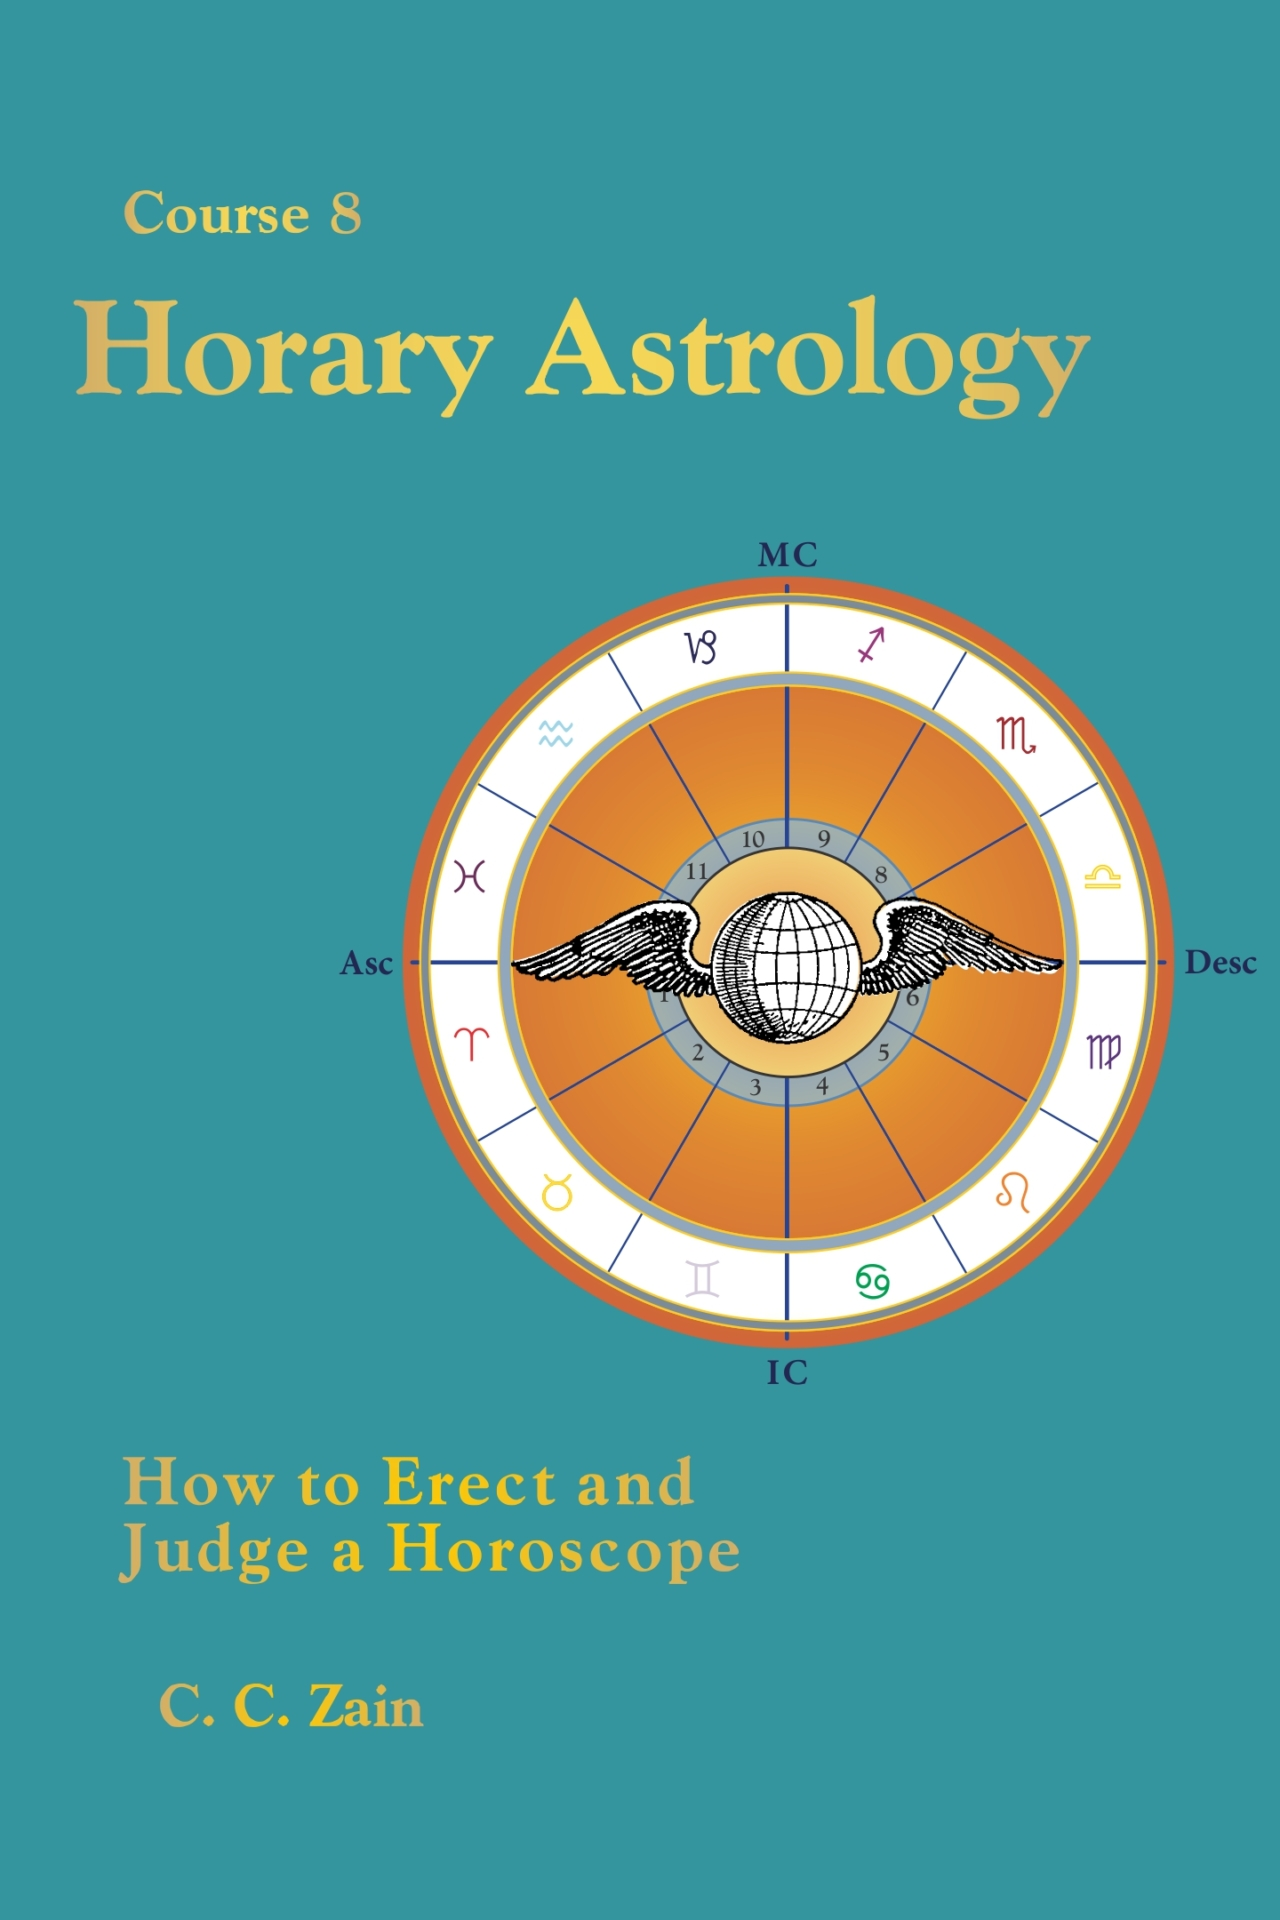 https://study.academyofhermeticarts.org/wp-content/uploads/2020/04/08_Horary_Astrology_eBook_Cover-1280x1920.jpg